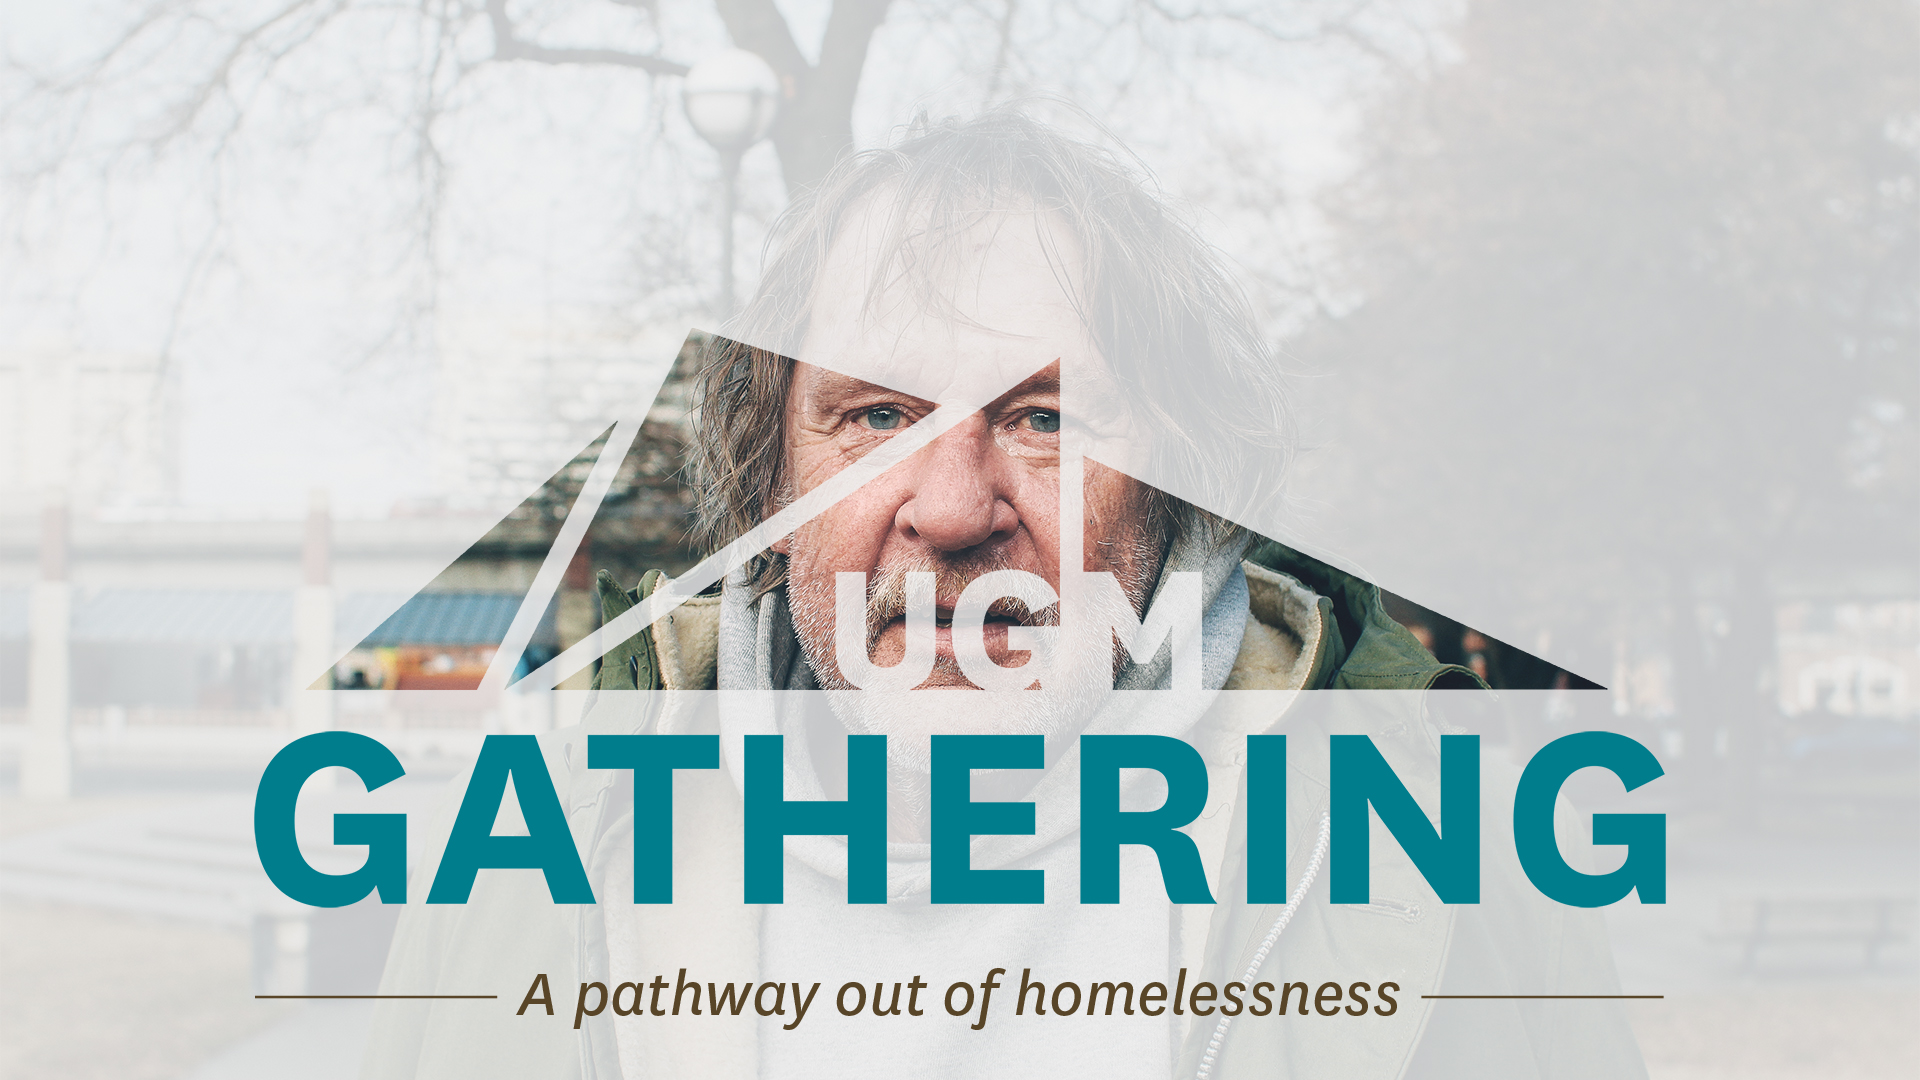 UGM Gathering: A Pathway Out of Homelessness